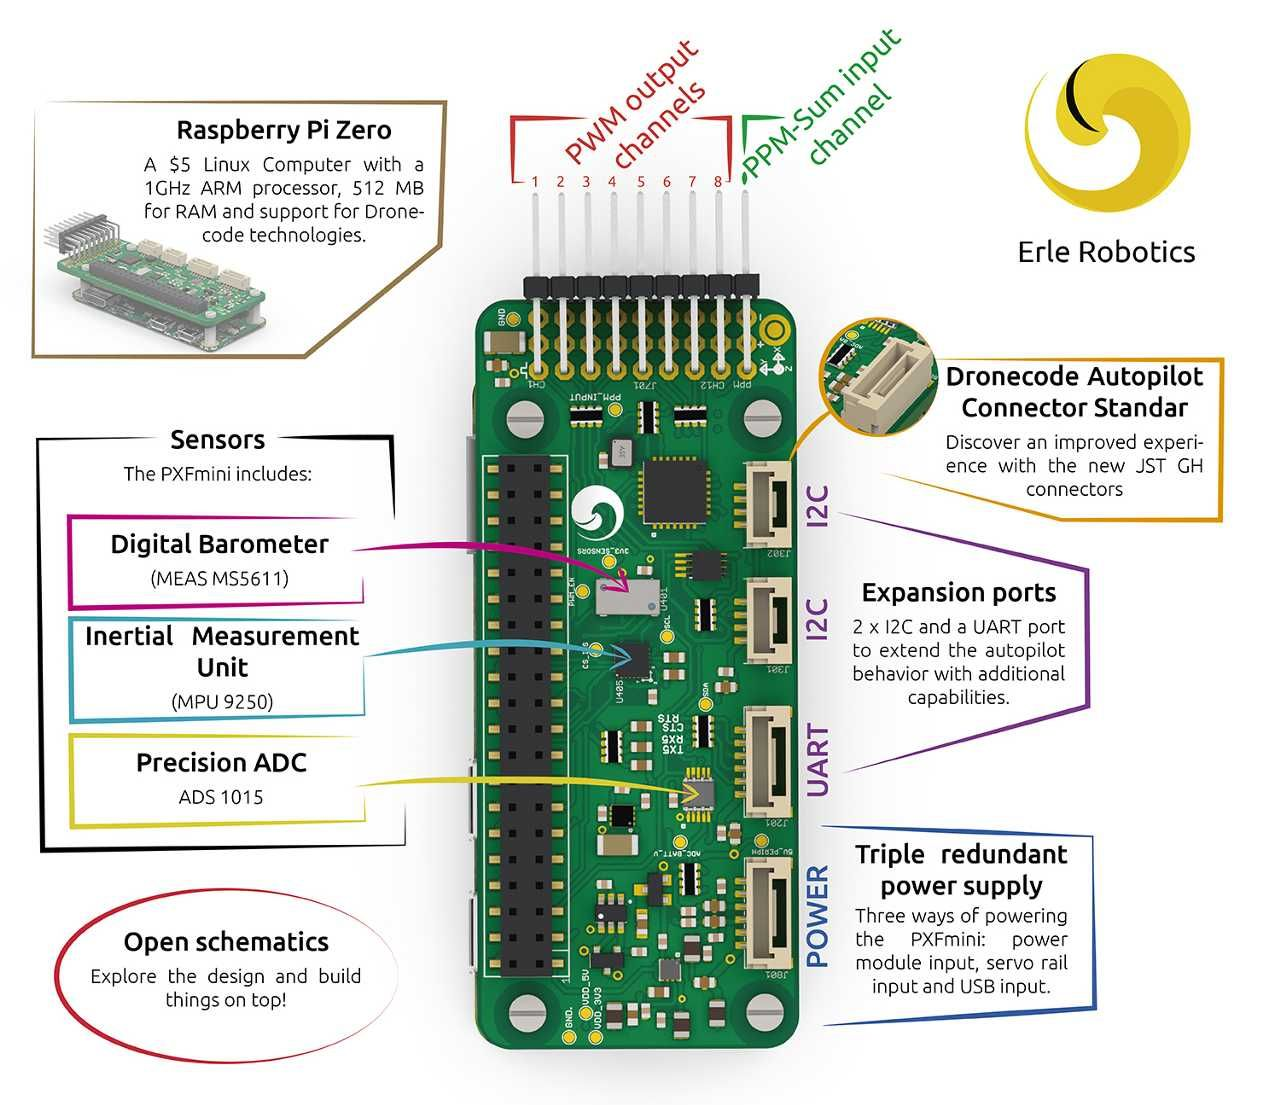 Raspberry Pi Zero Quadrocopter | PI | Raspberry, Raspberry pi ... on raspberry pi parts list, raspberry pi door, raspberry pi controls, raspberry pi system, raspberry pi relay wiring, raspberry pi chassis, japan wiring diagram, apple wiring diagram, raspberry pi solenoid, toshiba wiring diagram, raspberry pi brochure, raspberry pi gpio pins, raspberry pi gpio pinout, raspberry pi revision 2 schematic, raspberry pi tutorial, wifi wiring diagram, apache wiring diagram, raspberry pi cabinet, electronics wiring diagram, software wiring diagram,